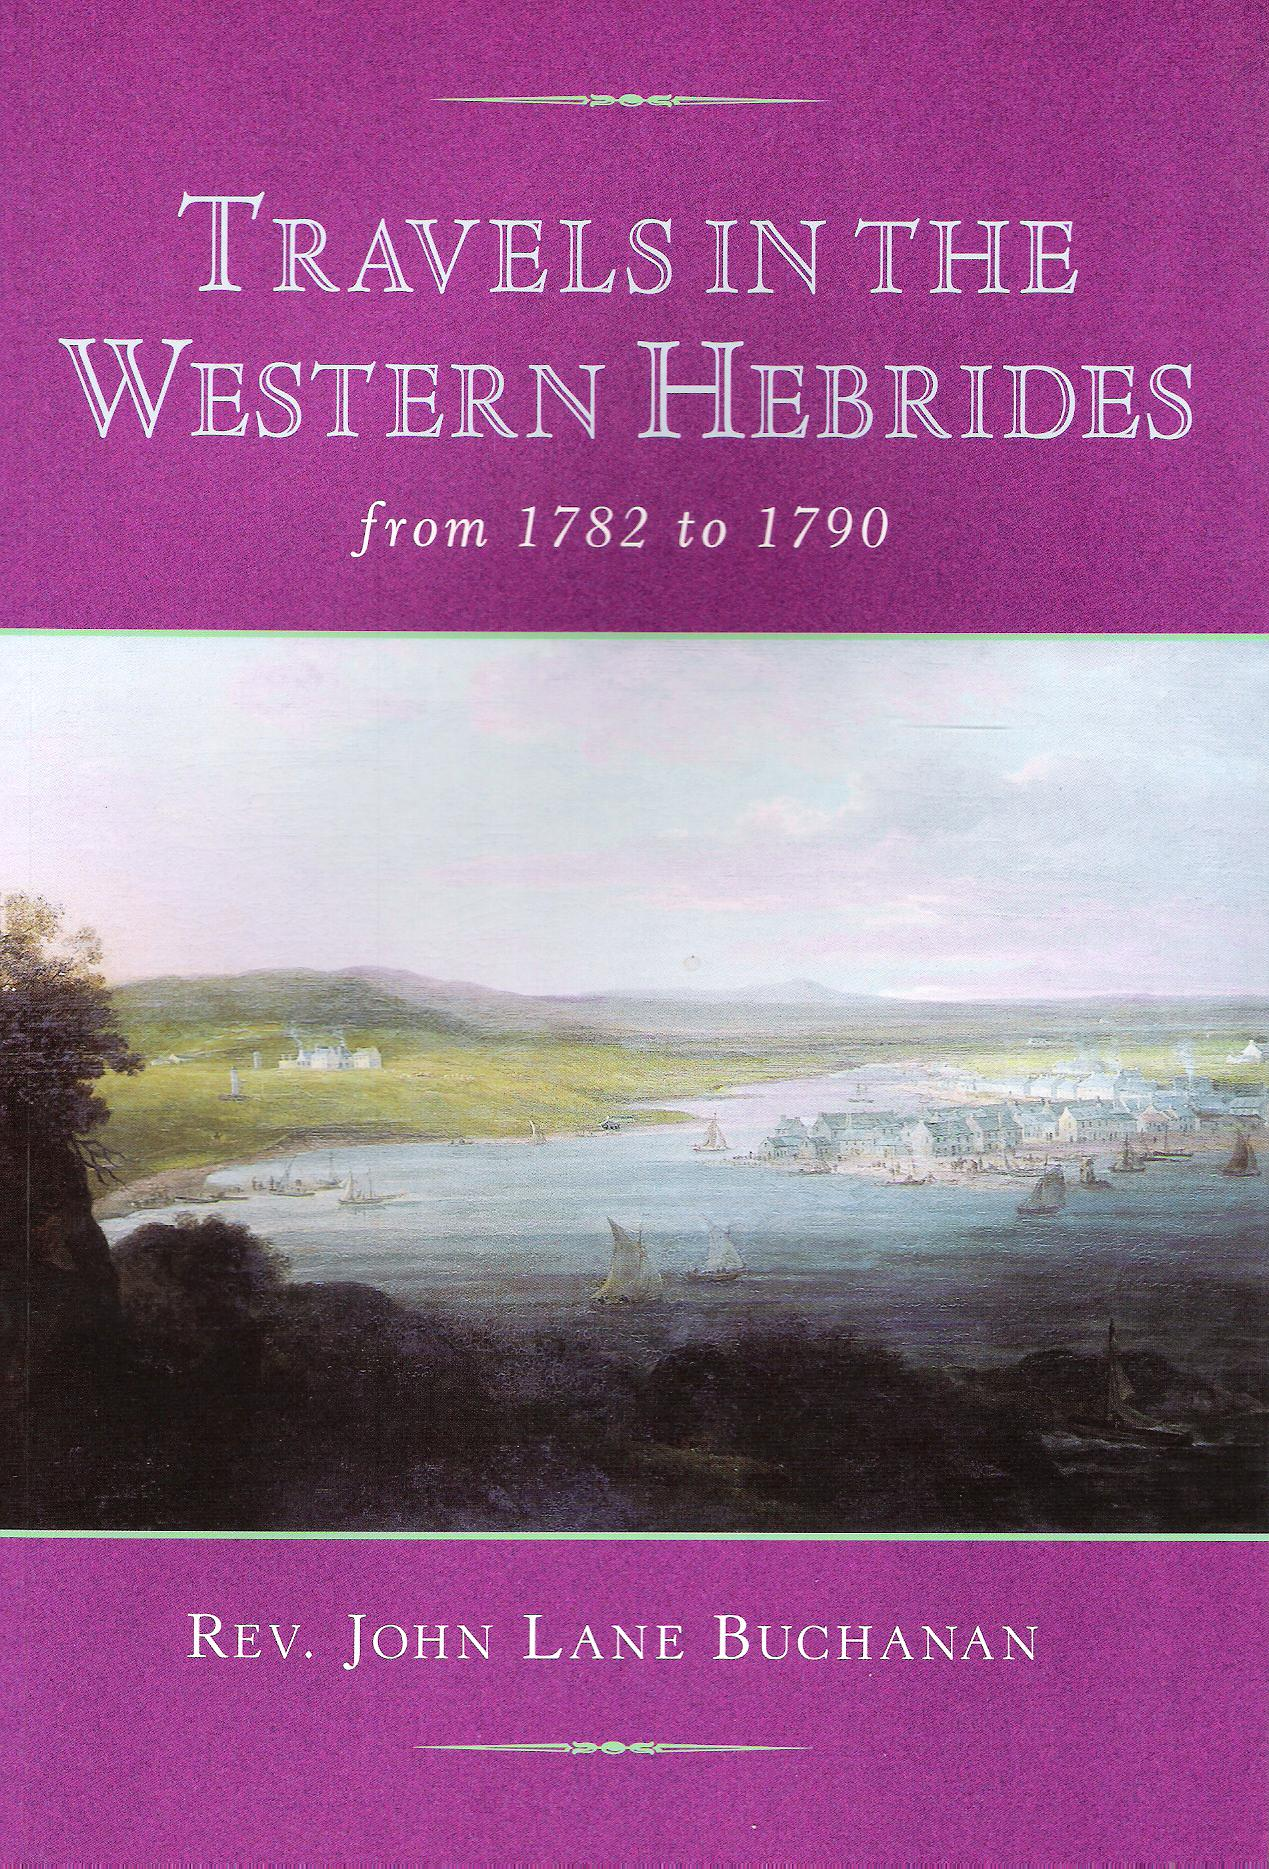 Image for Travels in the Western Hebrides: from 1782 to 1790.